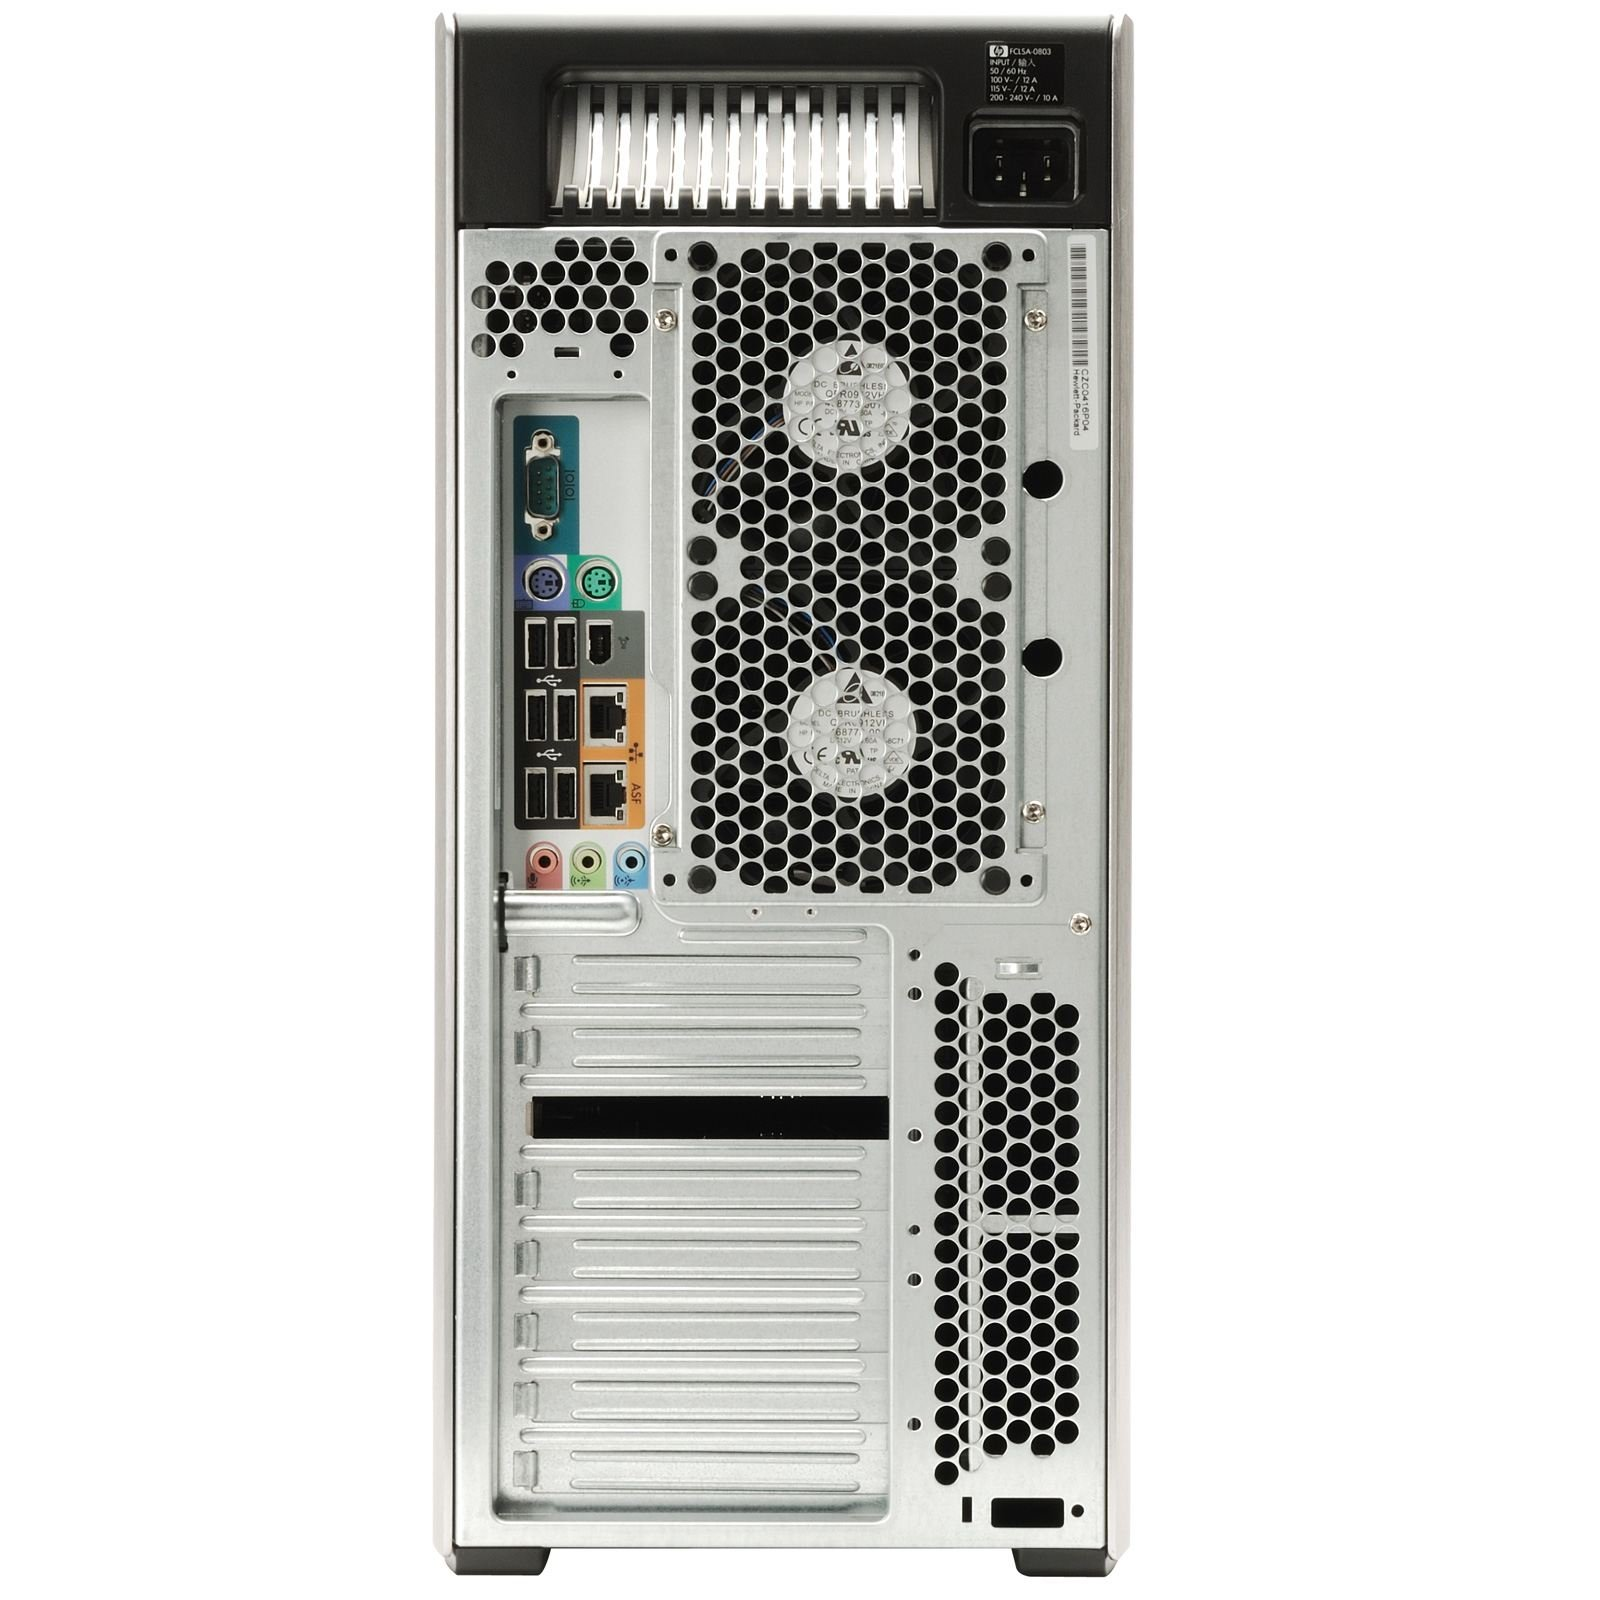 Beast Computer 8 CORE with 16 Hyperthreads - HP Z600 Workstation - 2 X Intel QUAD CORE Xeon up to 3.33GHzNEW 250GB SSD + 4TB HDD - 24GB RAM - 4 Monitor Capable - USB 3.0 (Certified Refurbished)